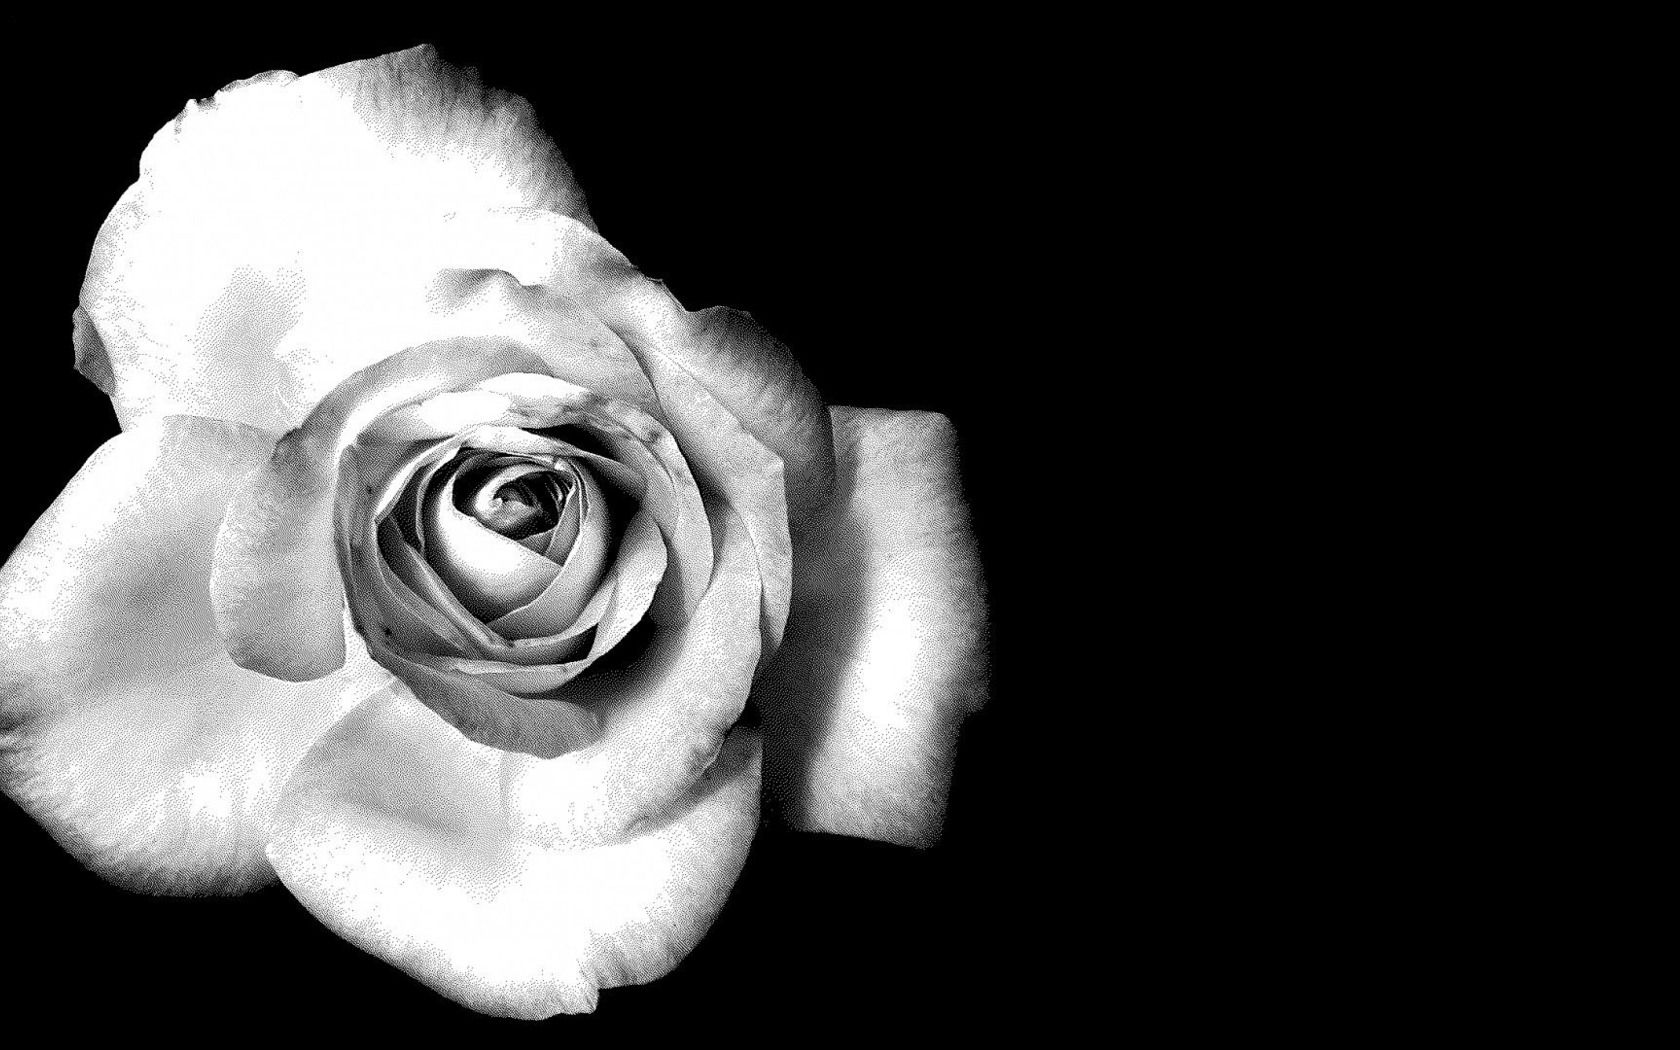 To acquire Flower Tumblr photography black and white picture trends